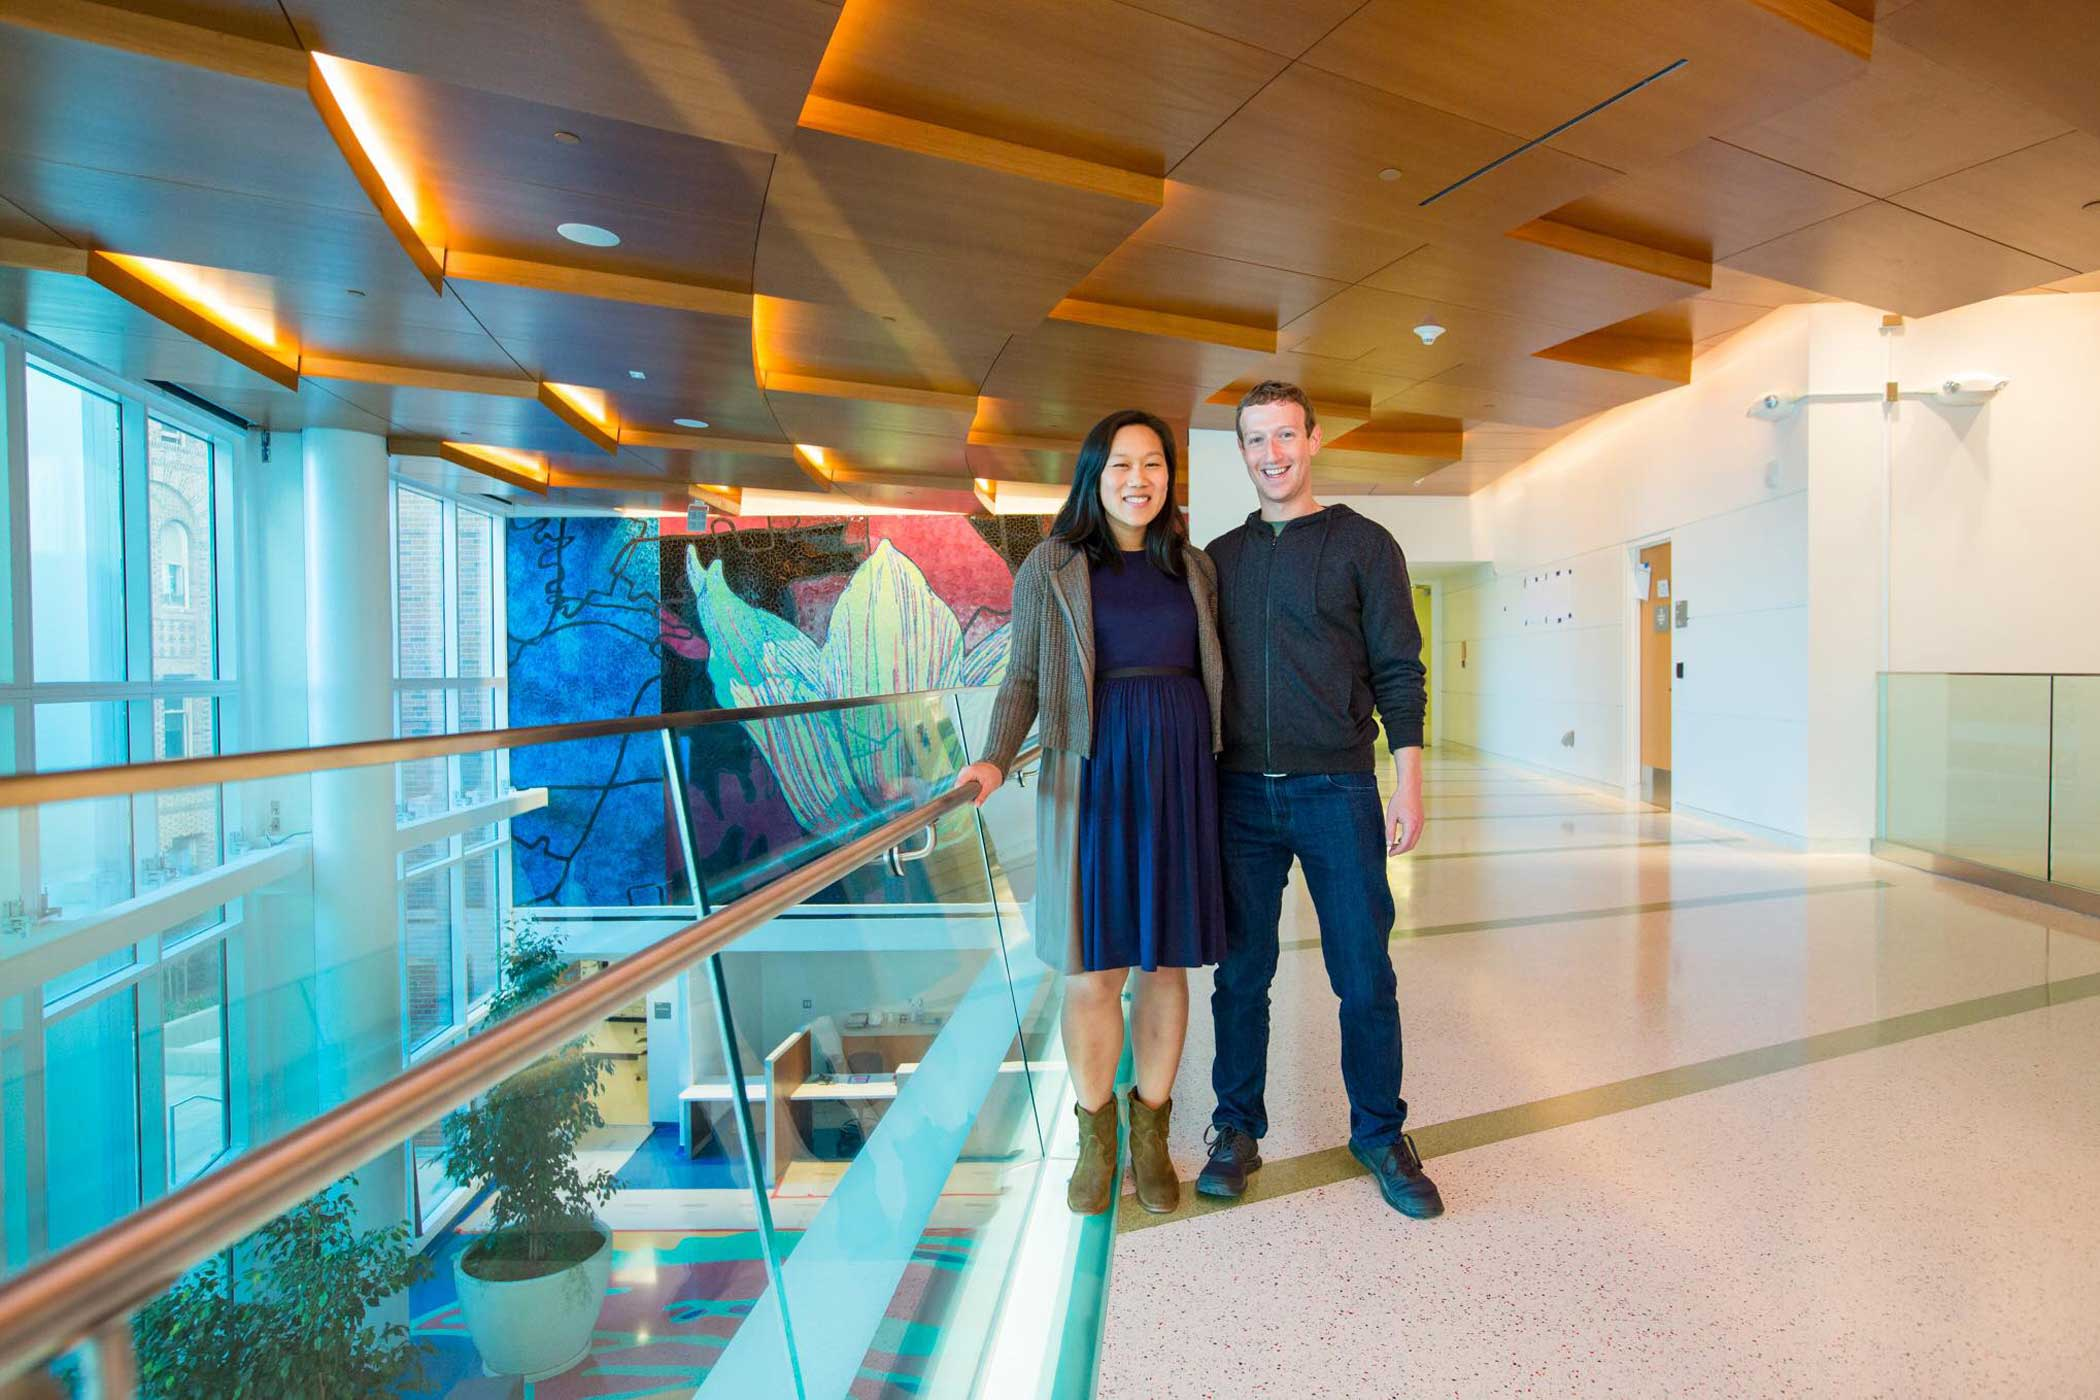 November 7, 2015 With Priscilla Chan at Zuckerberg San Francisco General.